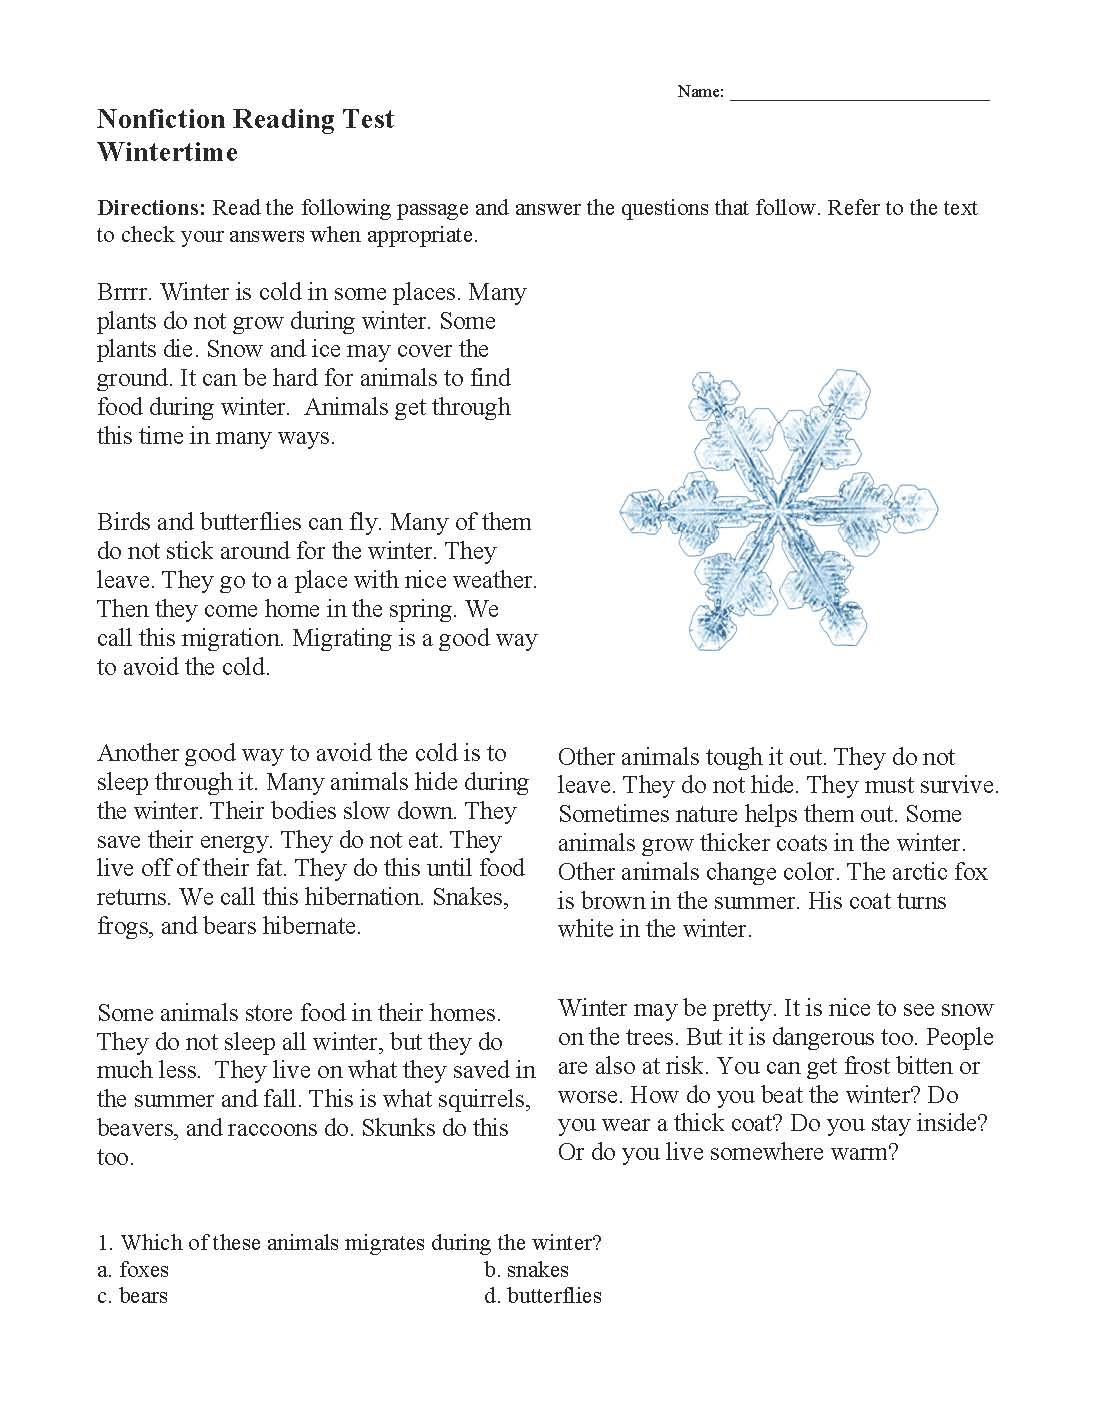 Cold War Reading Comprehension Worksheet Nonfiction Passages & Functional Texts